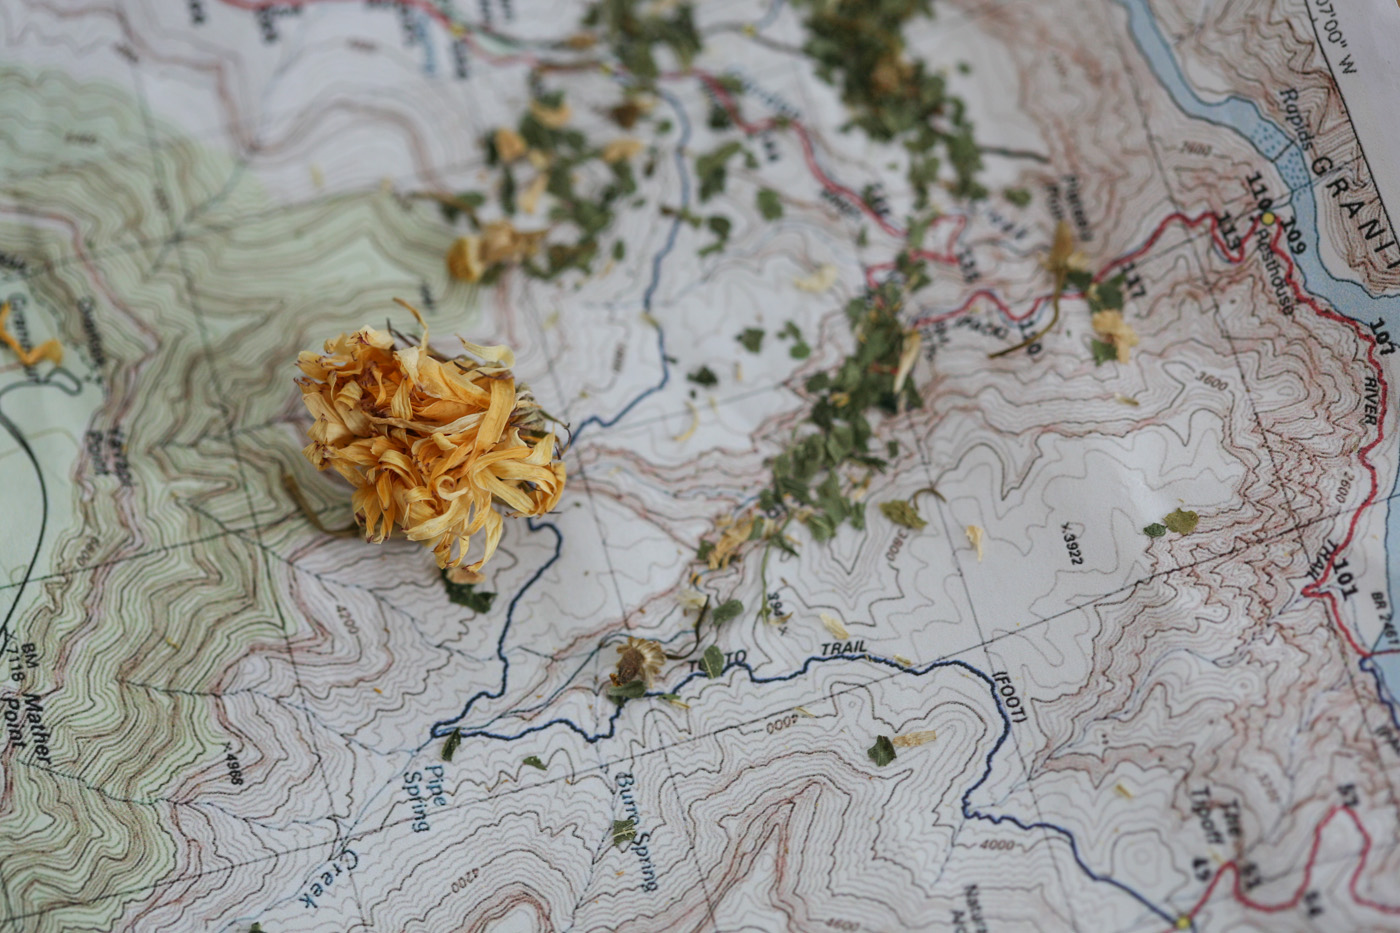 Herbal Travel Essentials For The Adventurous Traveler | Herbal Academy | If you're planning on some adventurous travel in the near future, this herbal travel essentials guide will help you find the herbs and preparations to take with you.